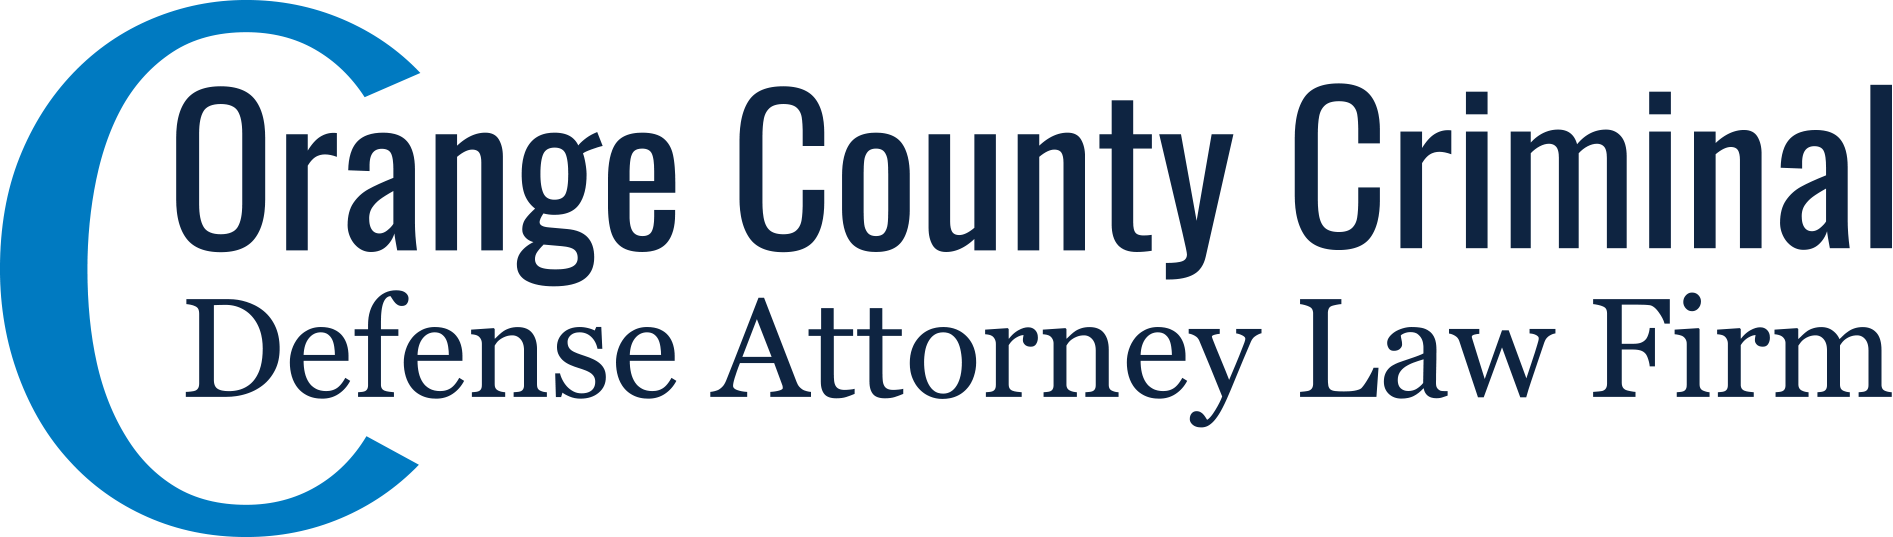 Orange County Criminal Defense Attorney Law Firm logo